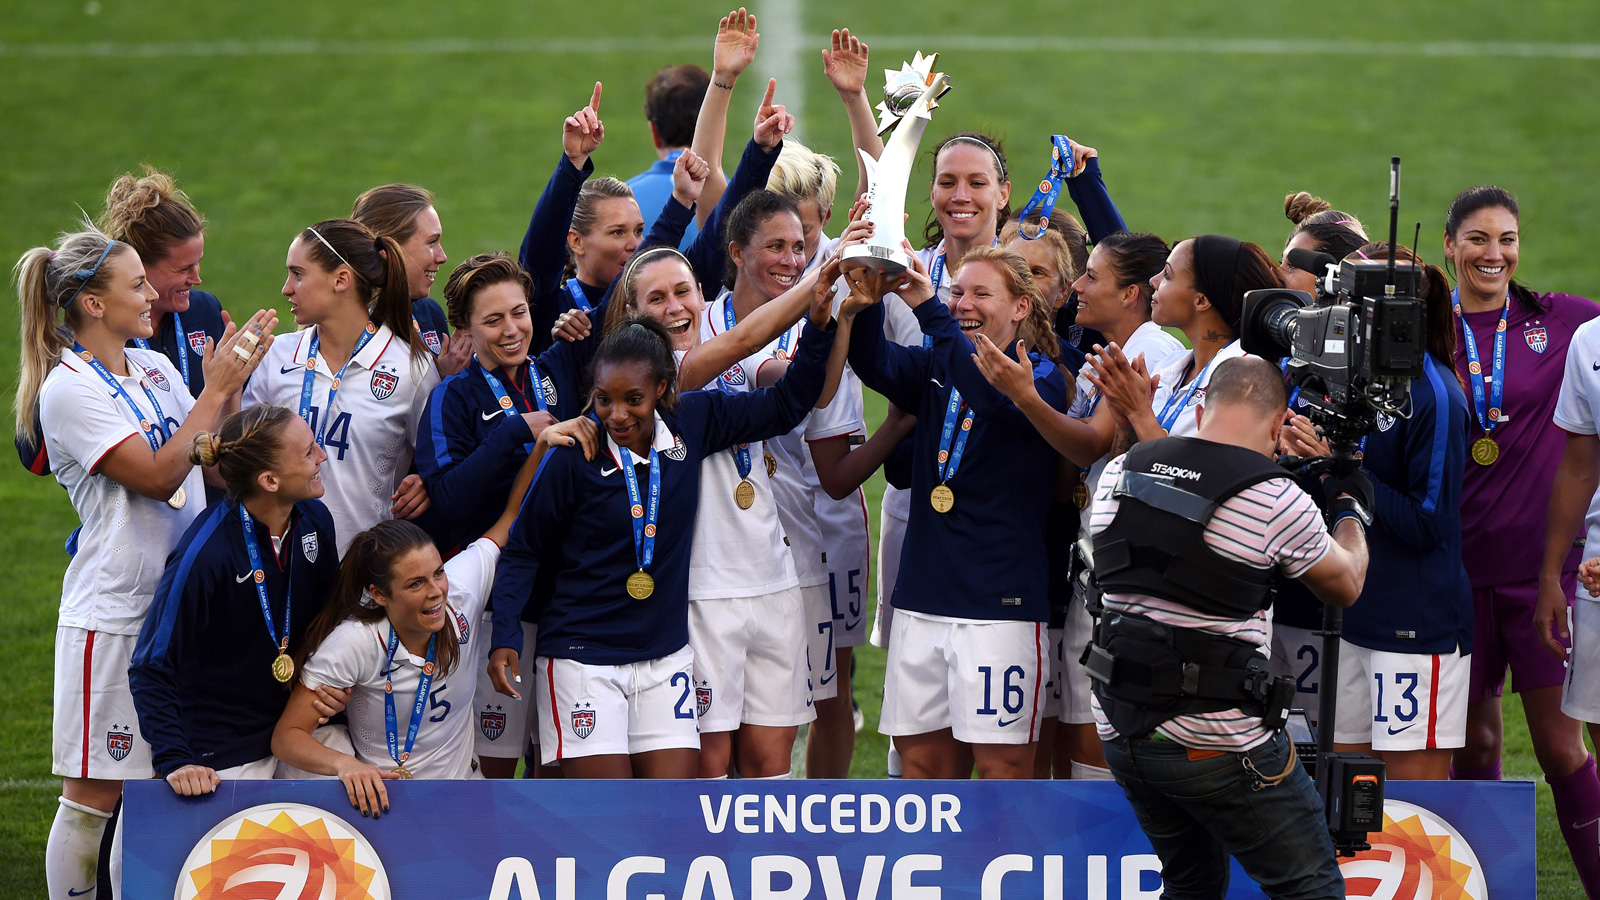 The U.S. women's national team celebrates winning the Algarve Cup after a 2-0 triumph over France. Julie Johnston and Christen Press scored, and Hope Solo saved a penalty kick.